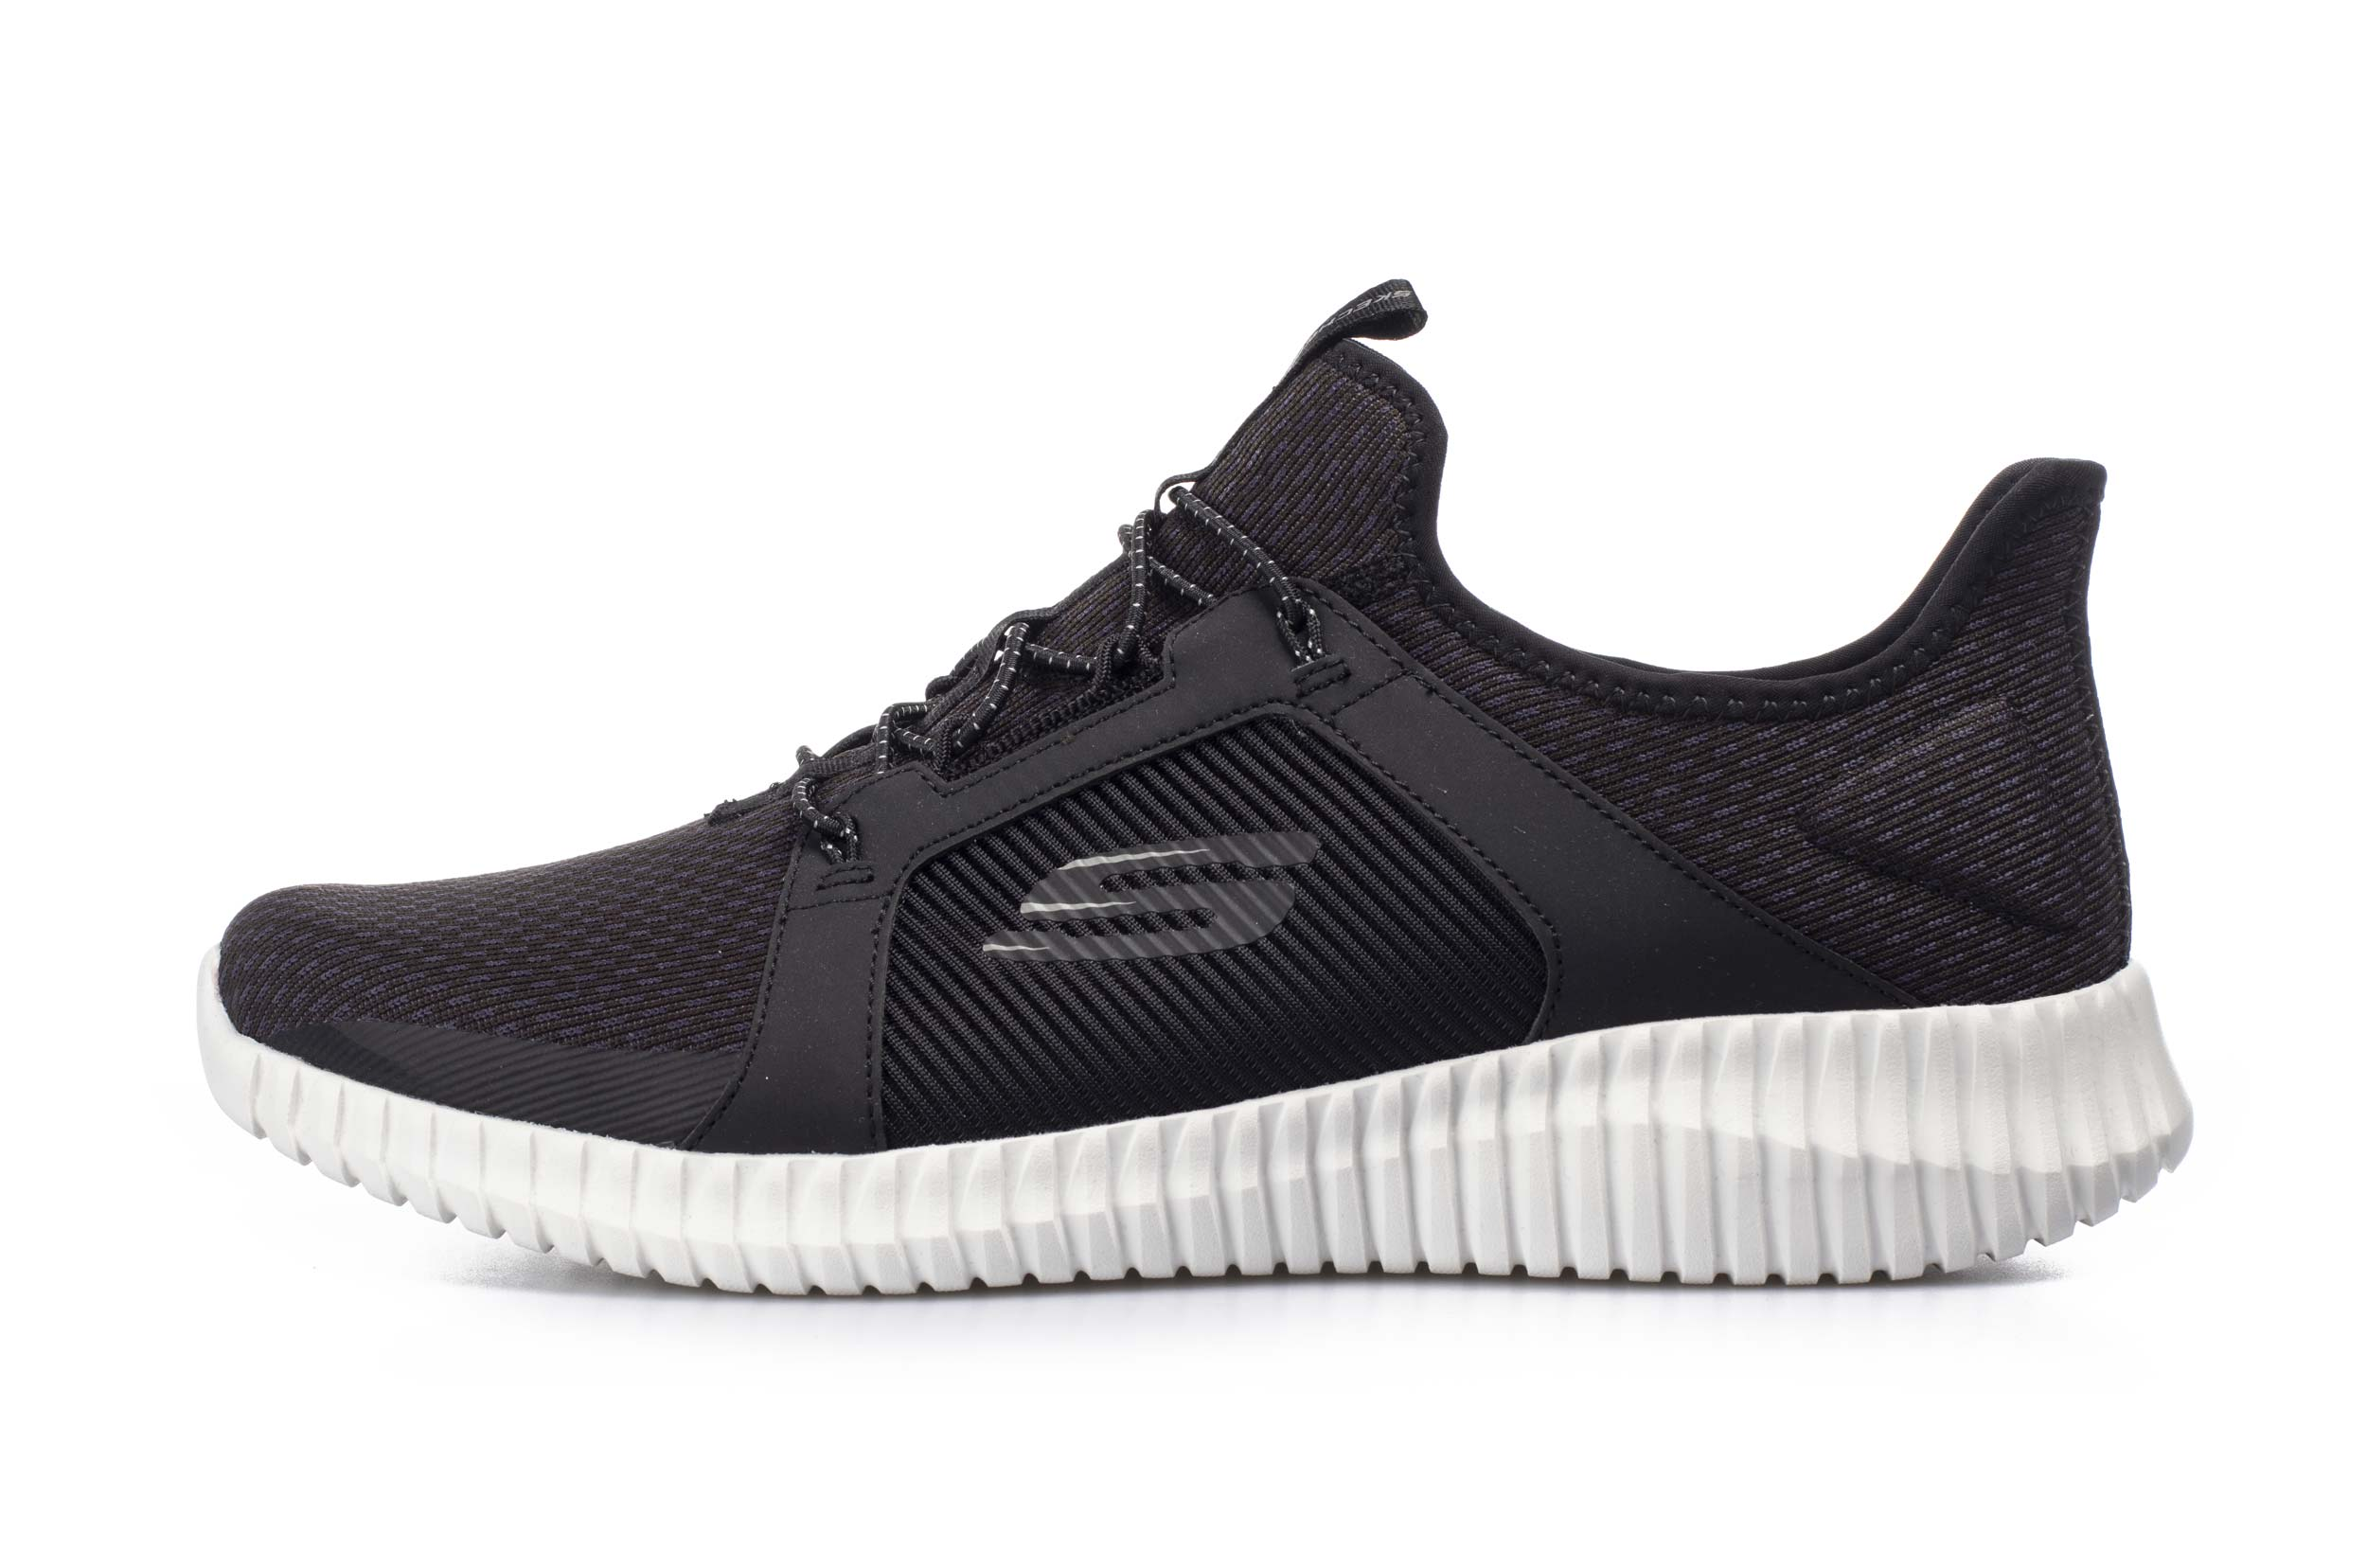 SKECHERS BITE FLEX 52640-BKW Μαύρο